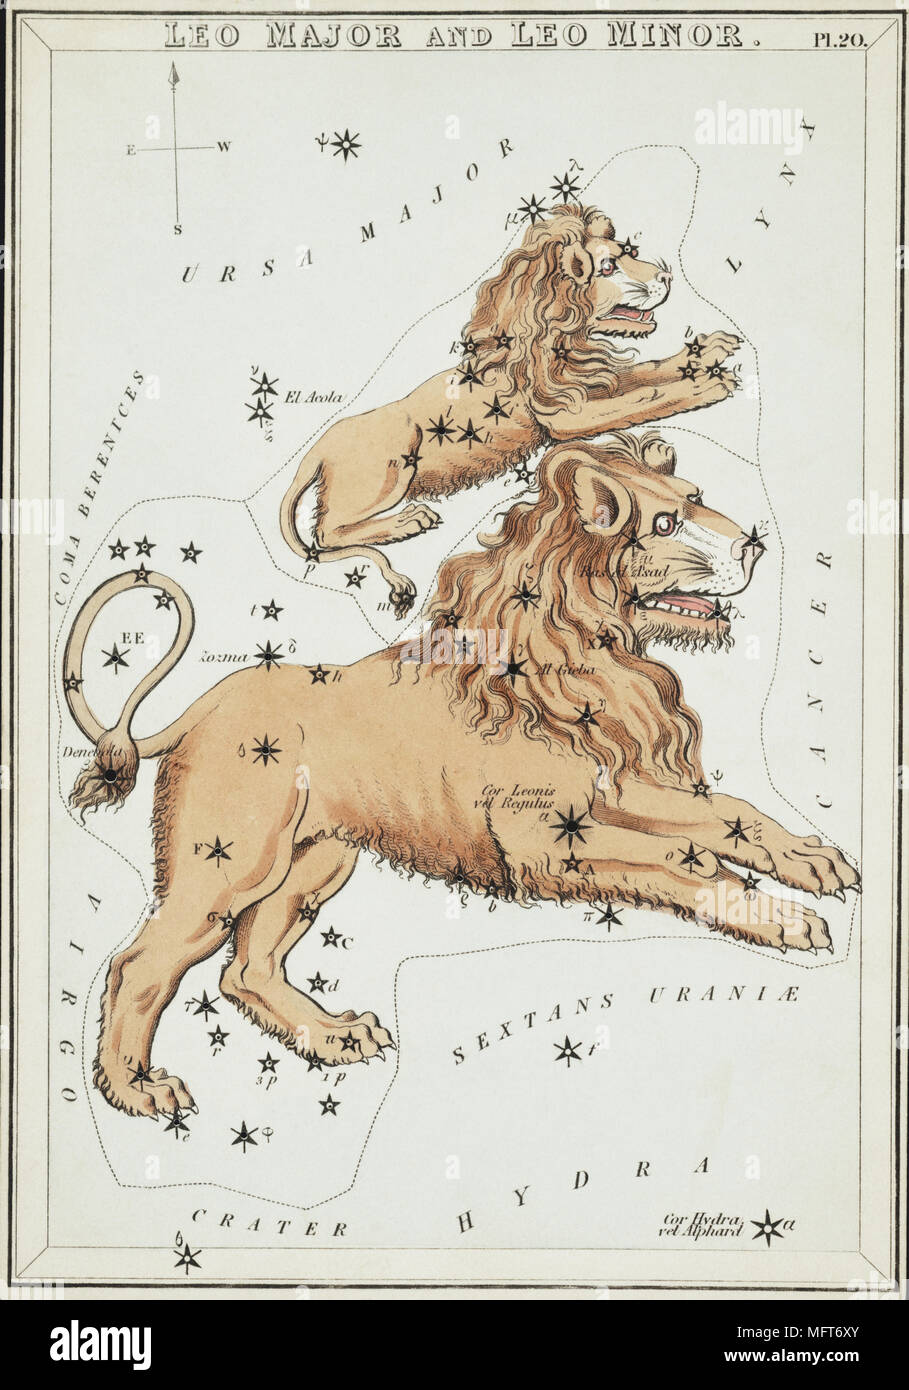 Leo Major and Leo Minor. Card Number 20 from Urania's Mirror, or A View of the Heavens, one of a set of 32 astronomical star chart cards engraved by Sidney Hall and publshed 1824. - Stock Image